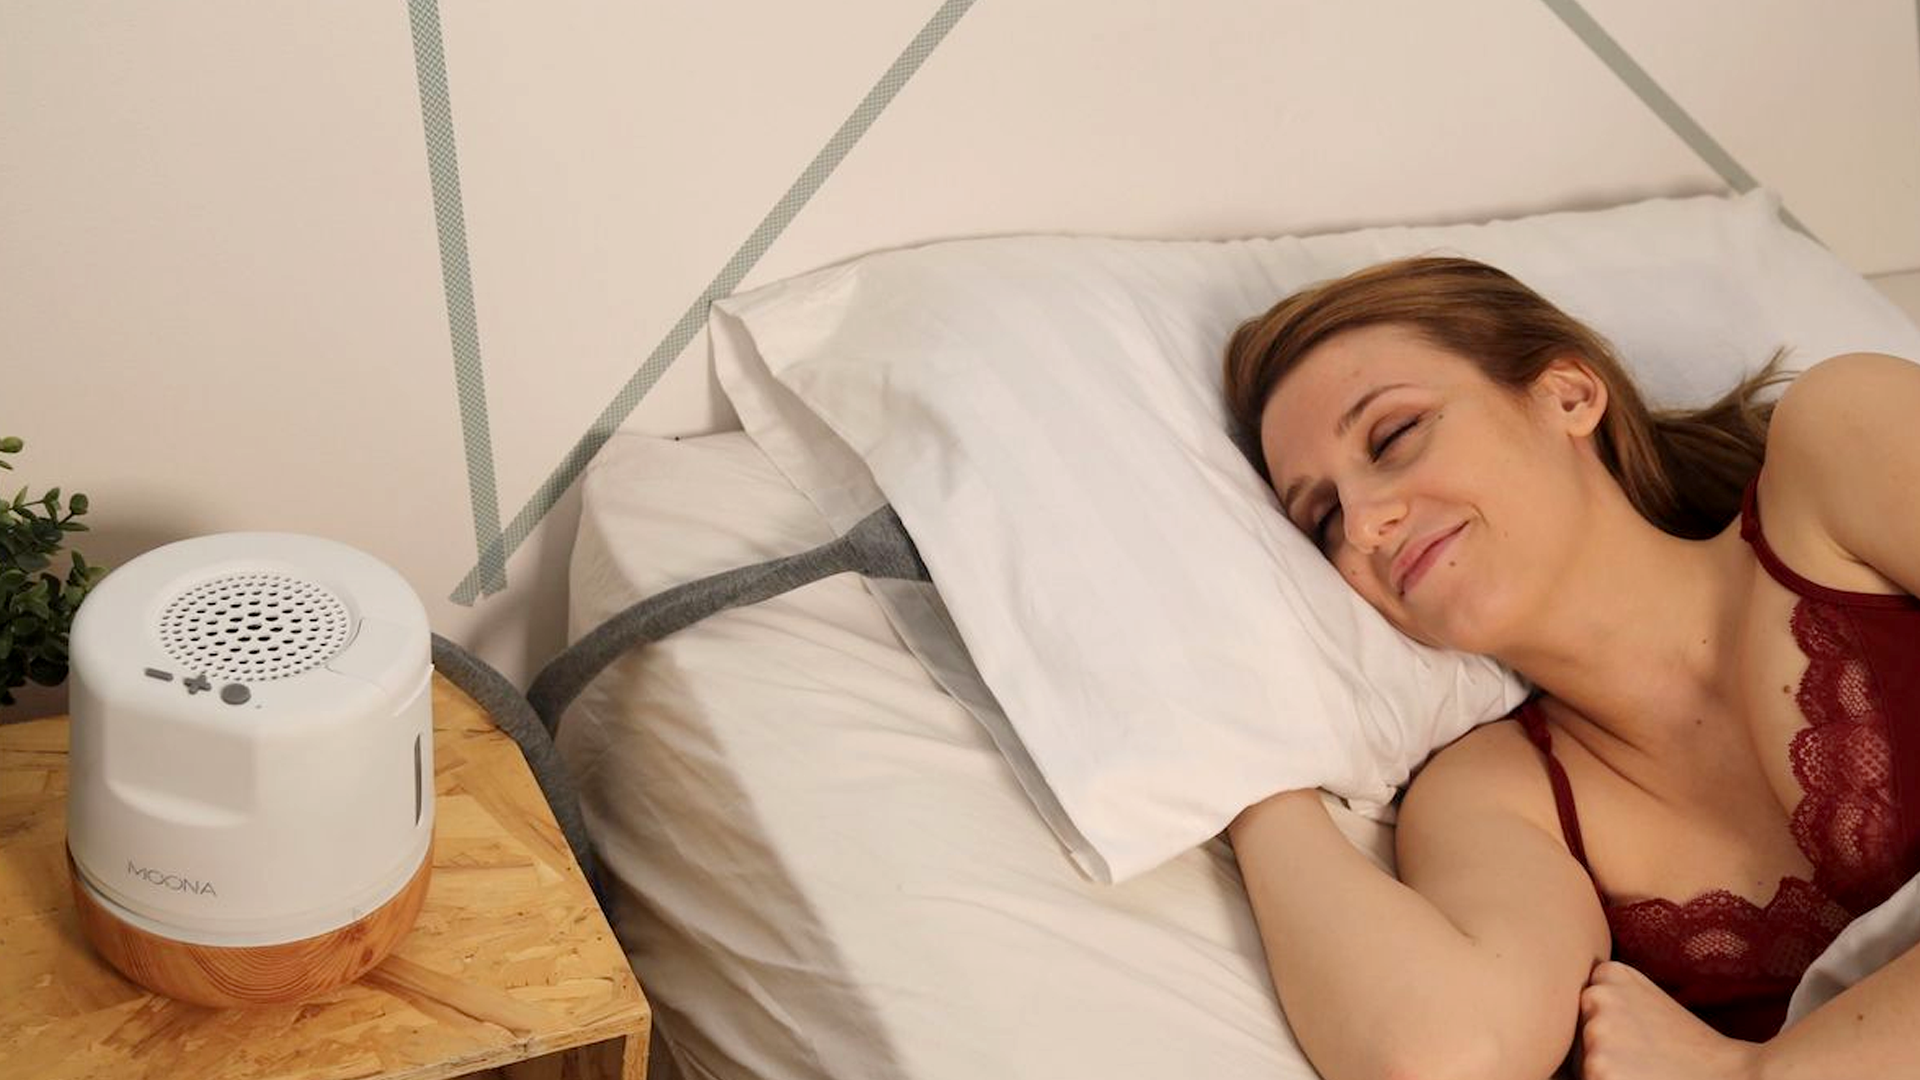 A woman using the Moona smart pillow